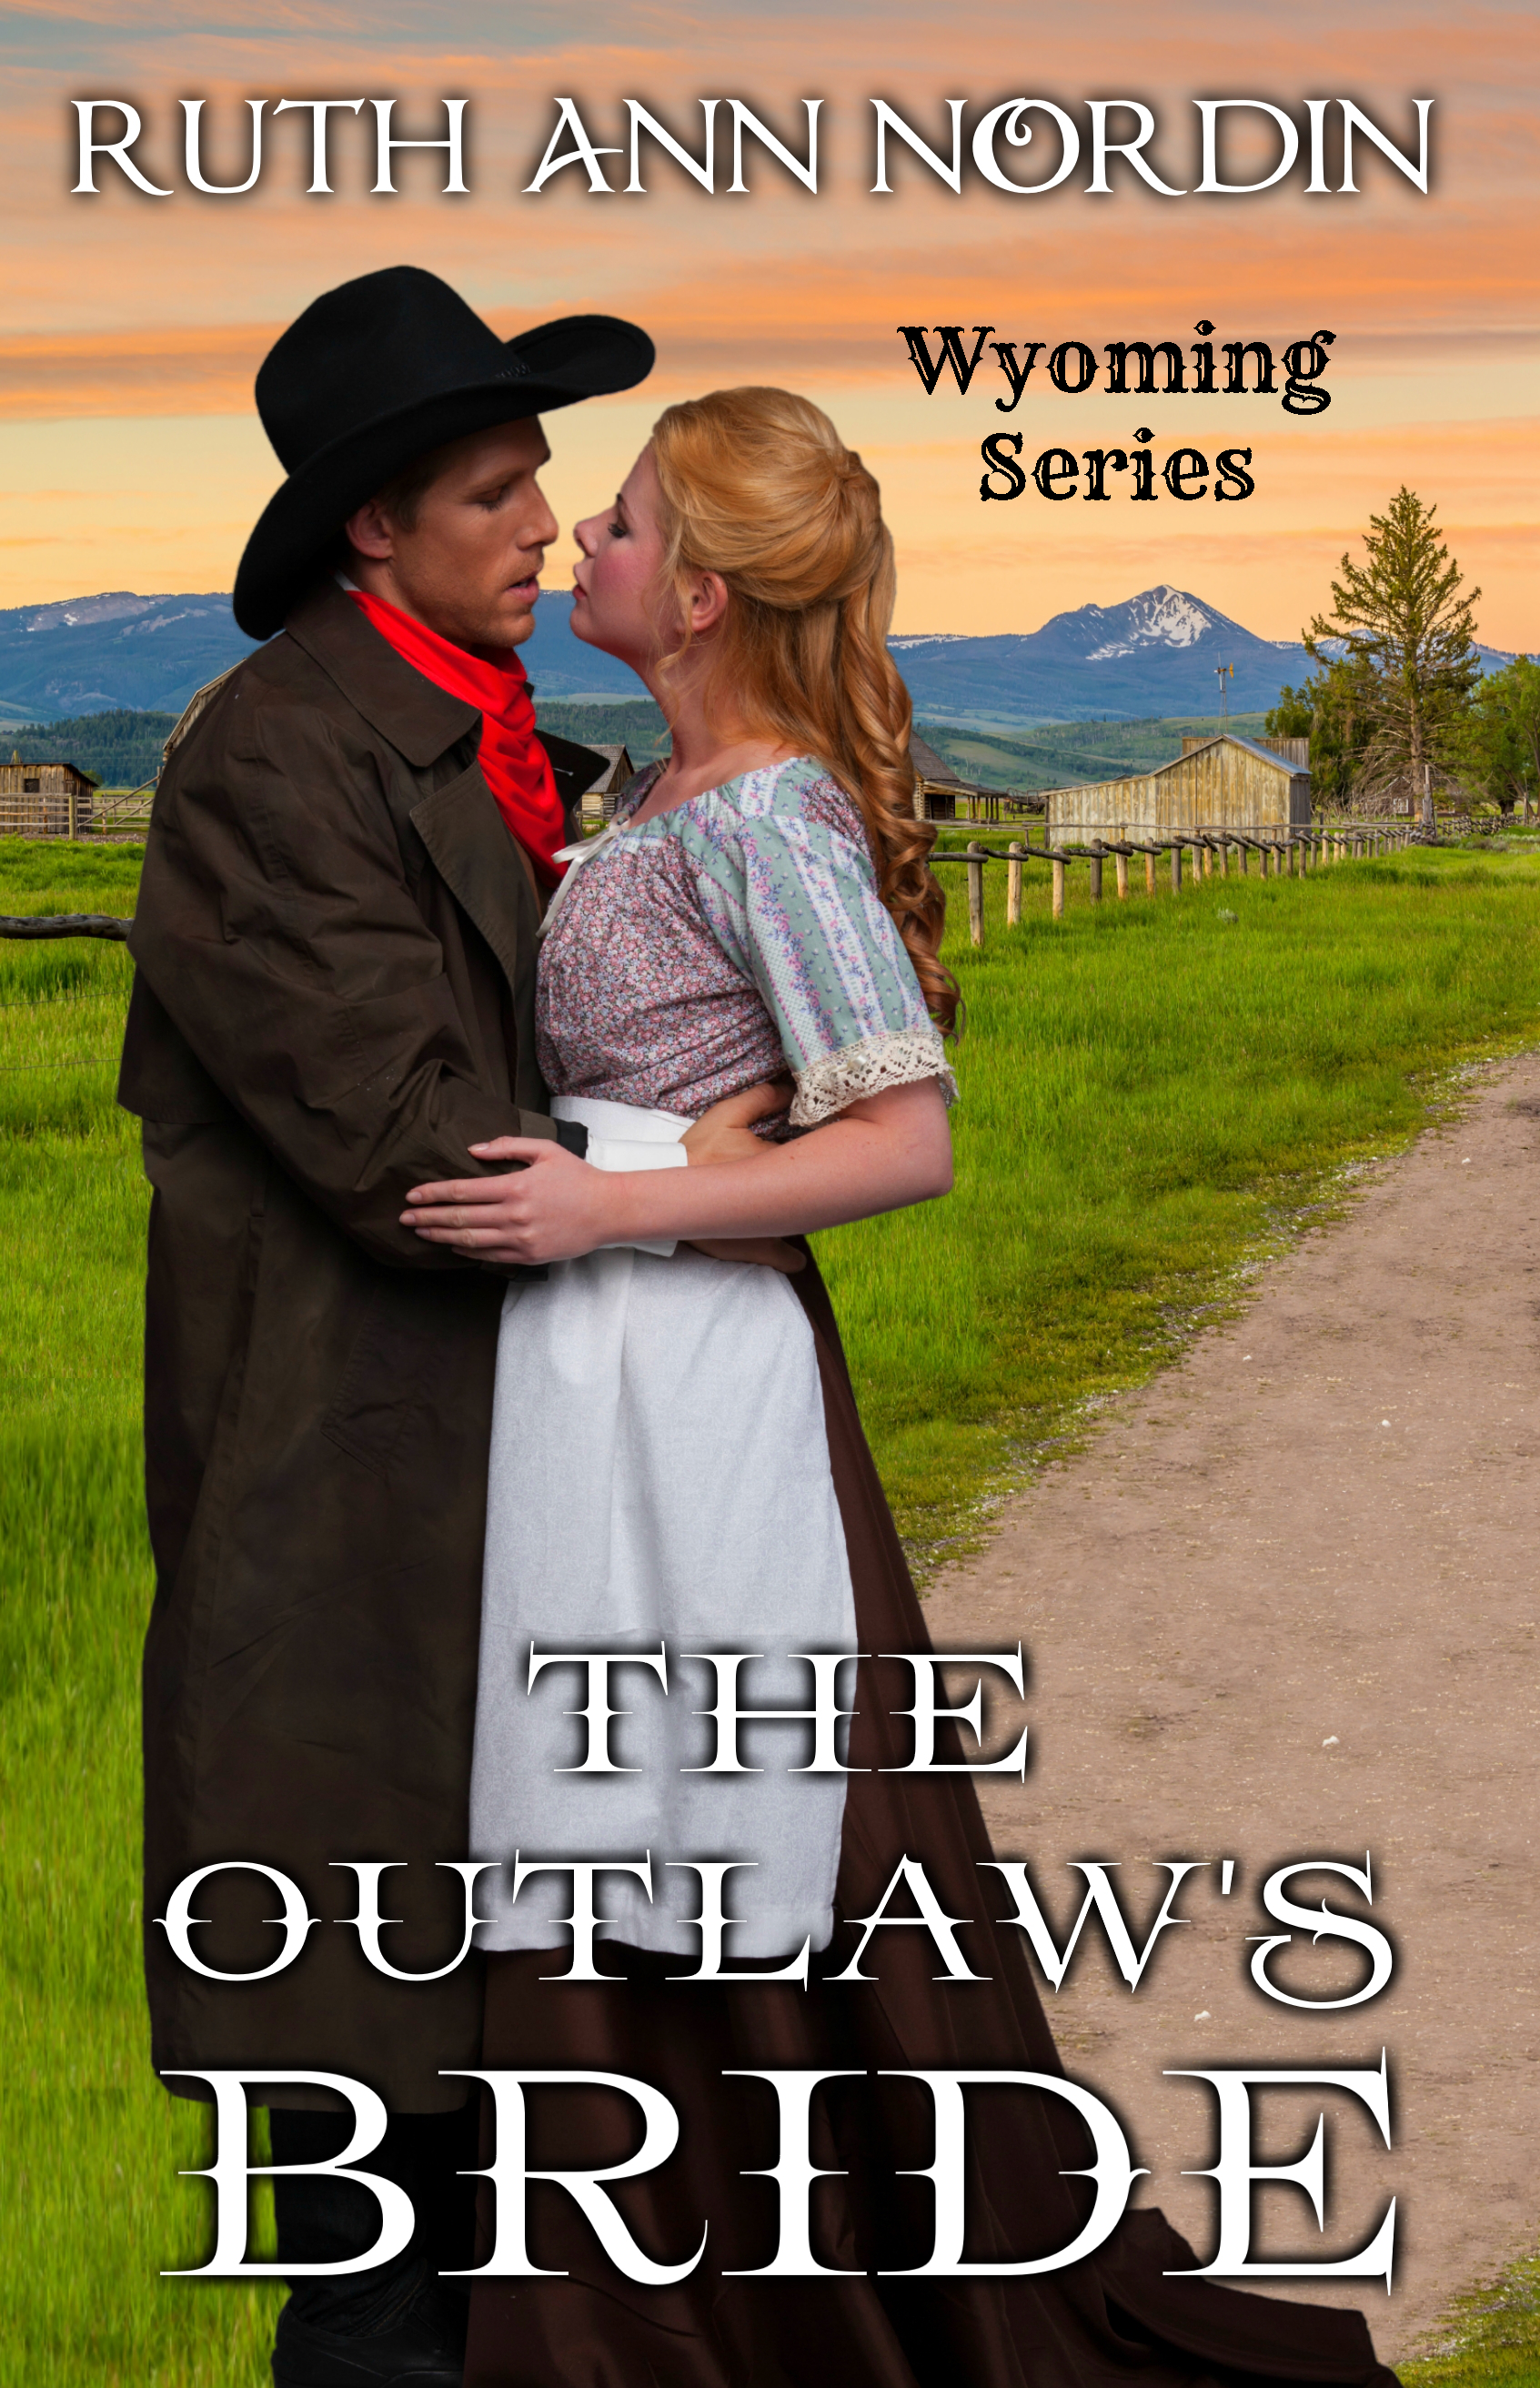 The Outlaw's Bride (sst-cccliv)